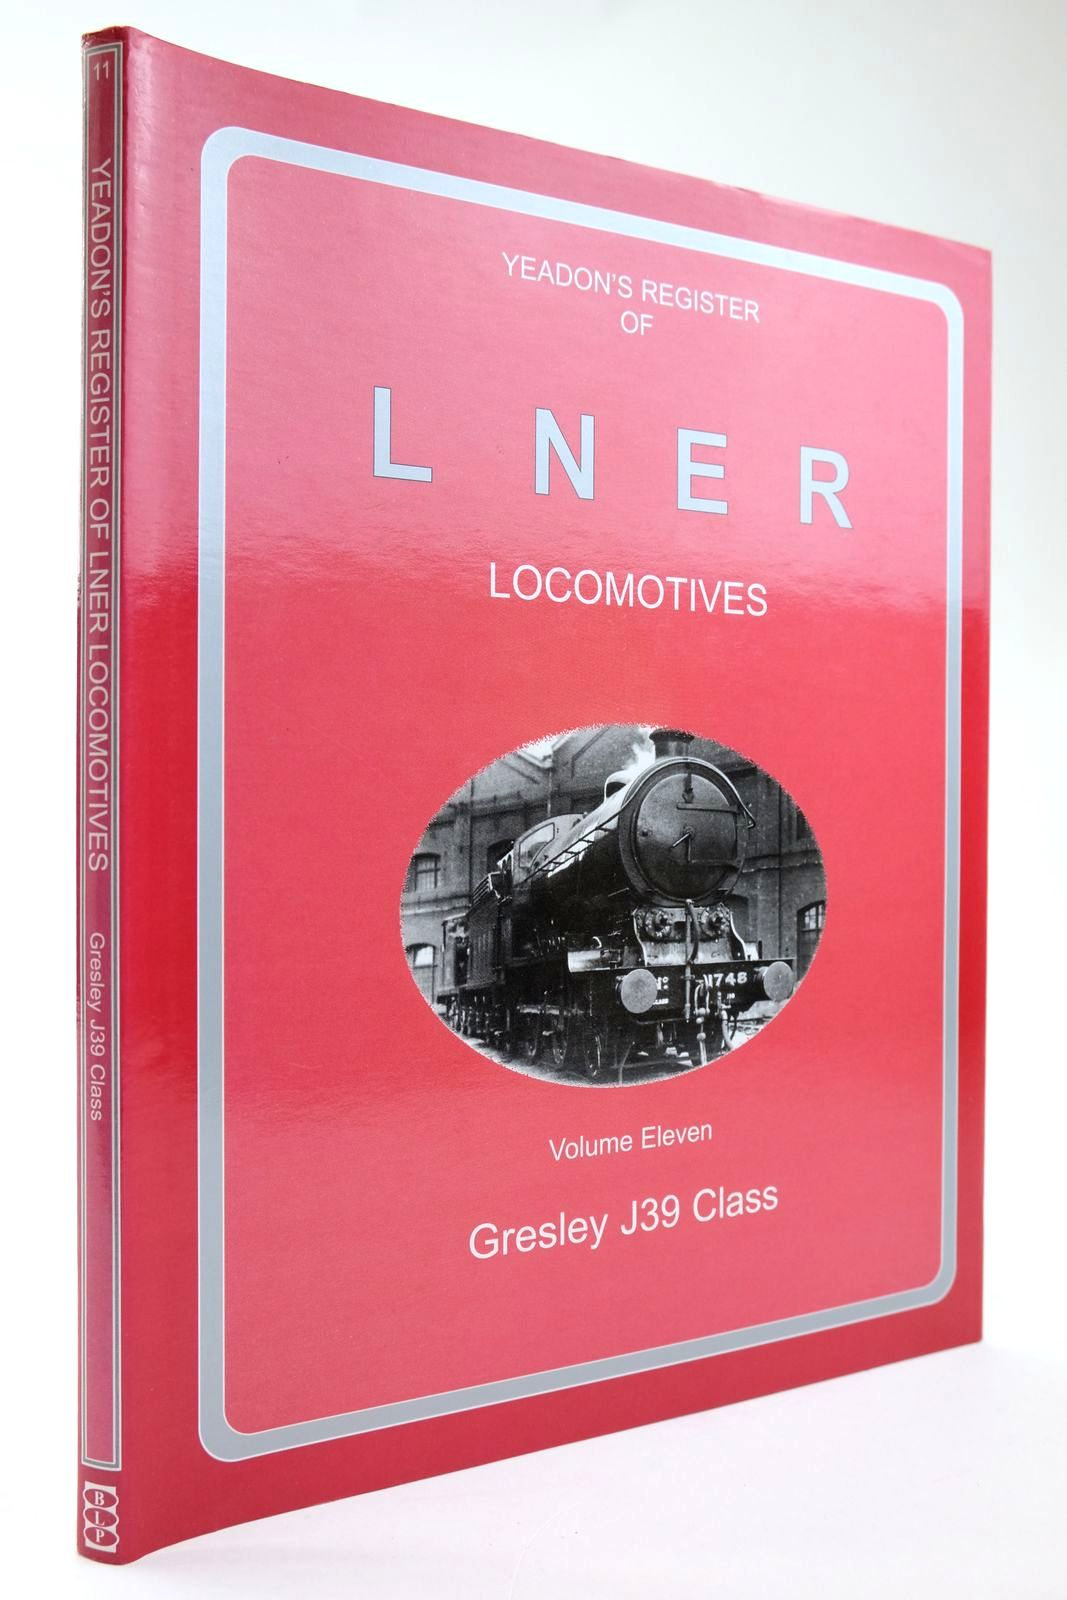 Photo of YEADON'S REGISTER OF LNER LOCOMOTIVES VOLUME ELEVEN- Stock Number: 2133571